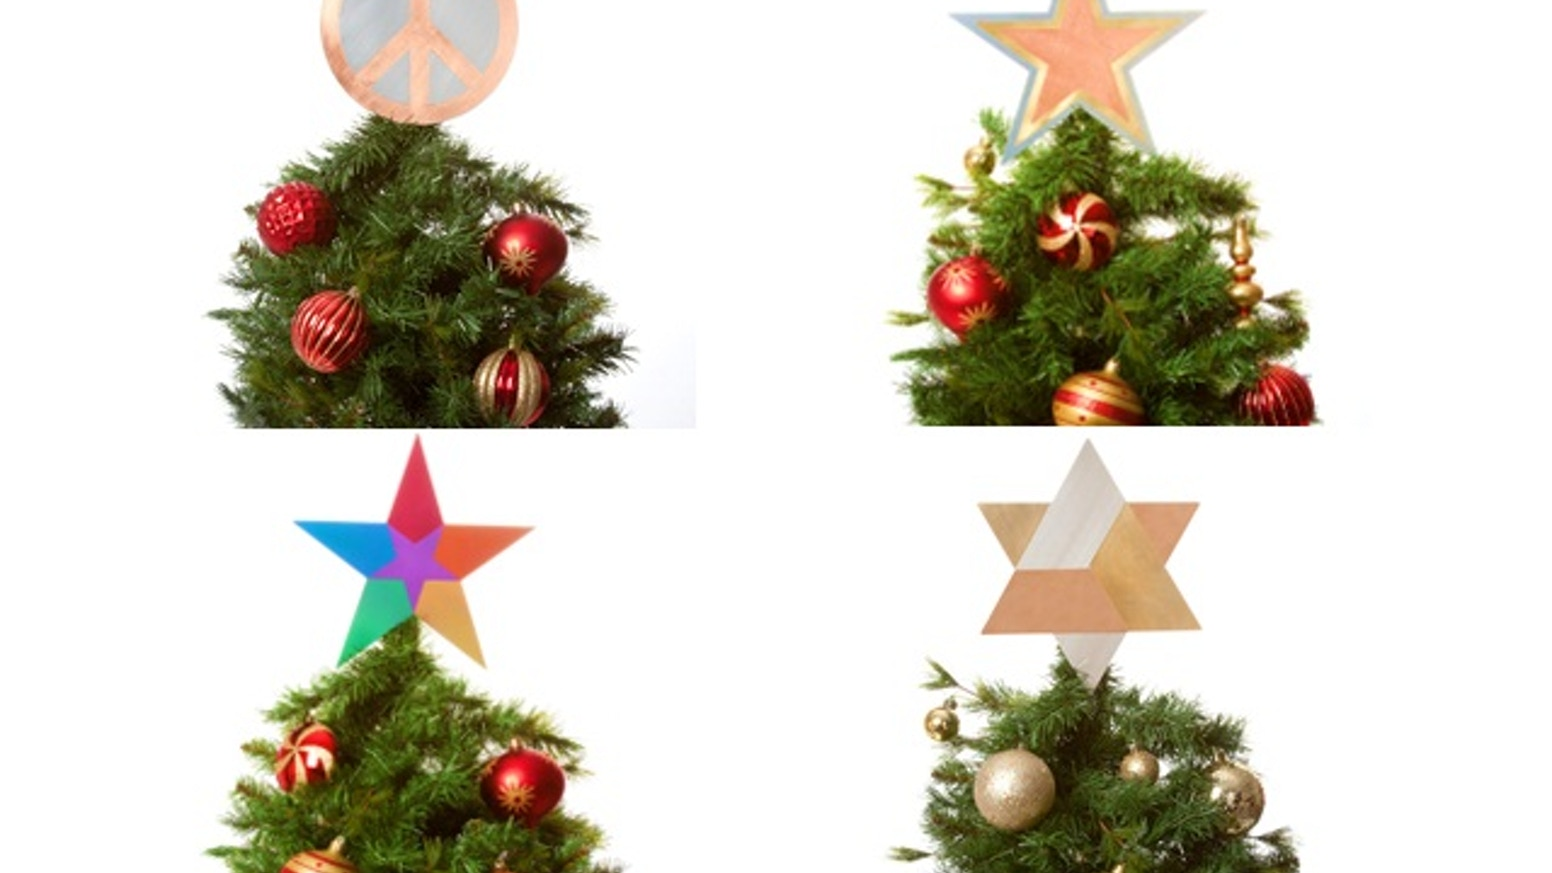 Diversity Christmas Tree Toppers: Celebrate In Style!